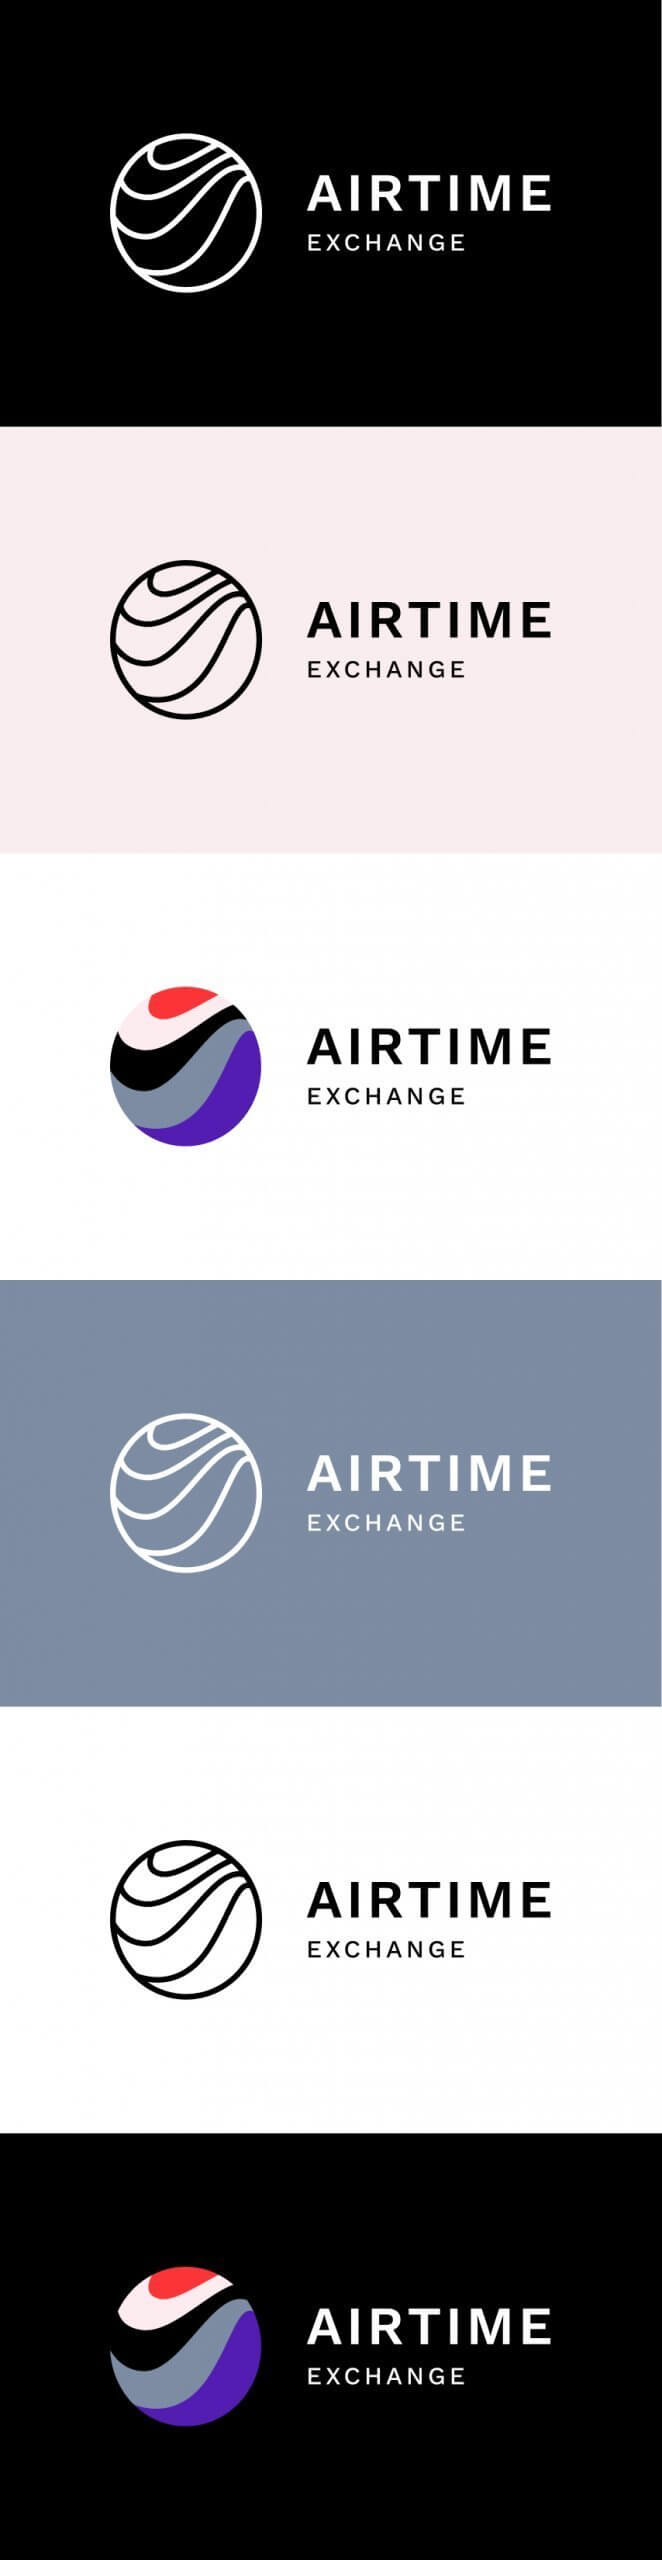 Group 2173 scaled Airtime Exchange 3 Baasbox